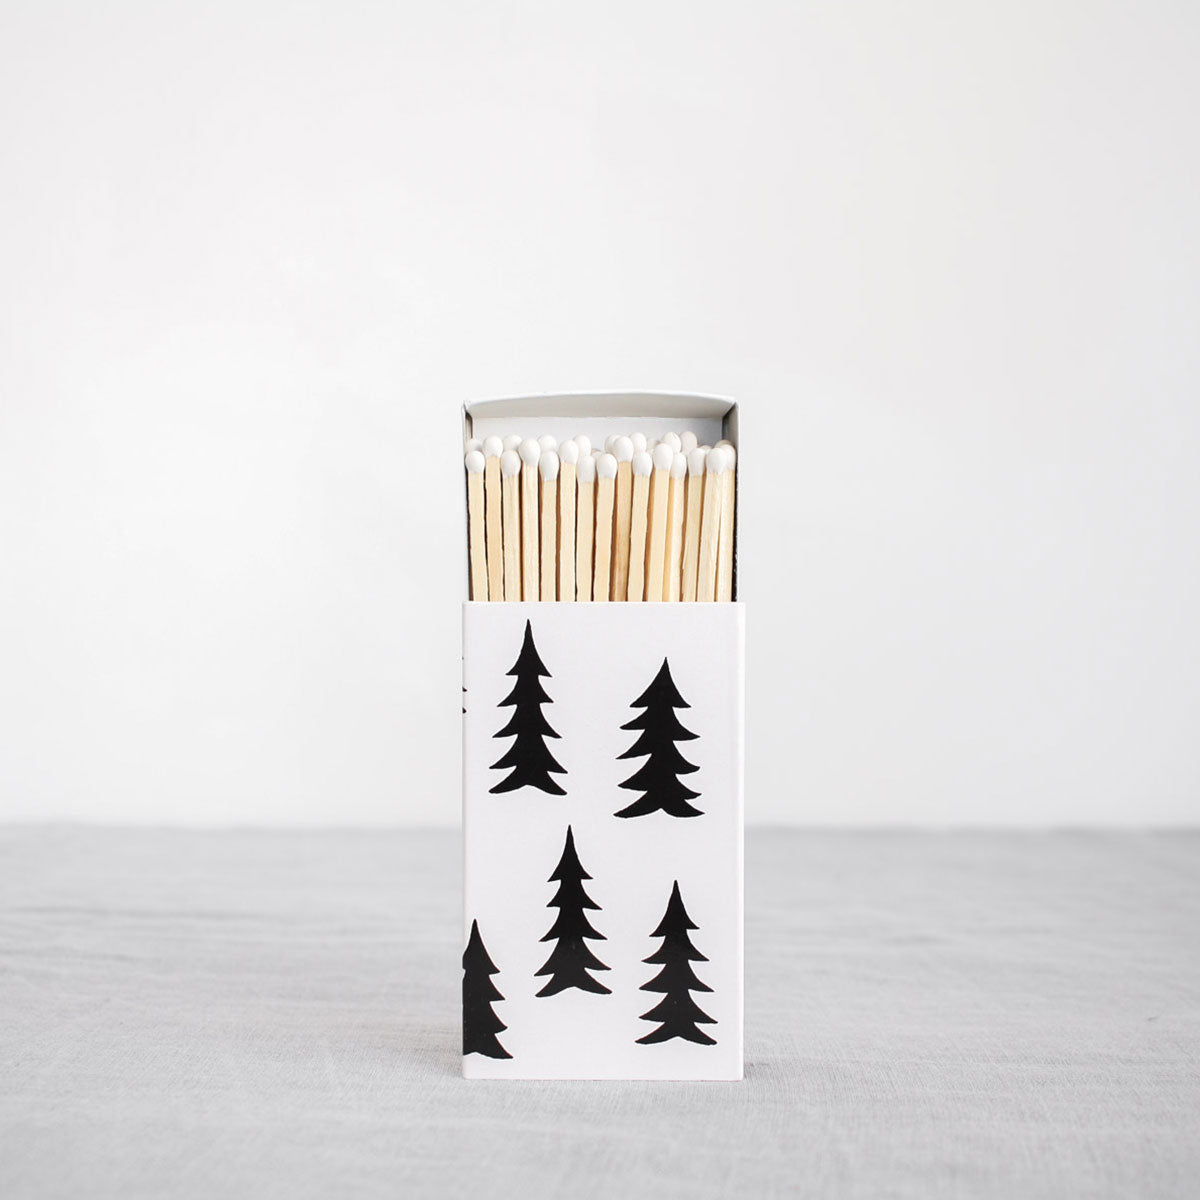 Fine Little Day- Gran Long Matches - Matchbox - Matches - Swedish Design - Scandinavian Design - Scandinavian Living - Simple Design - Nordic - Nordic Living - Nordic Design - Interiors - Interior Styling